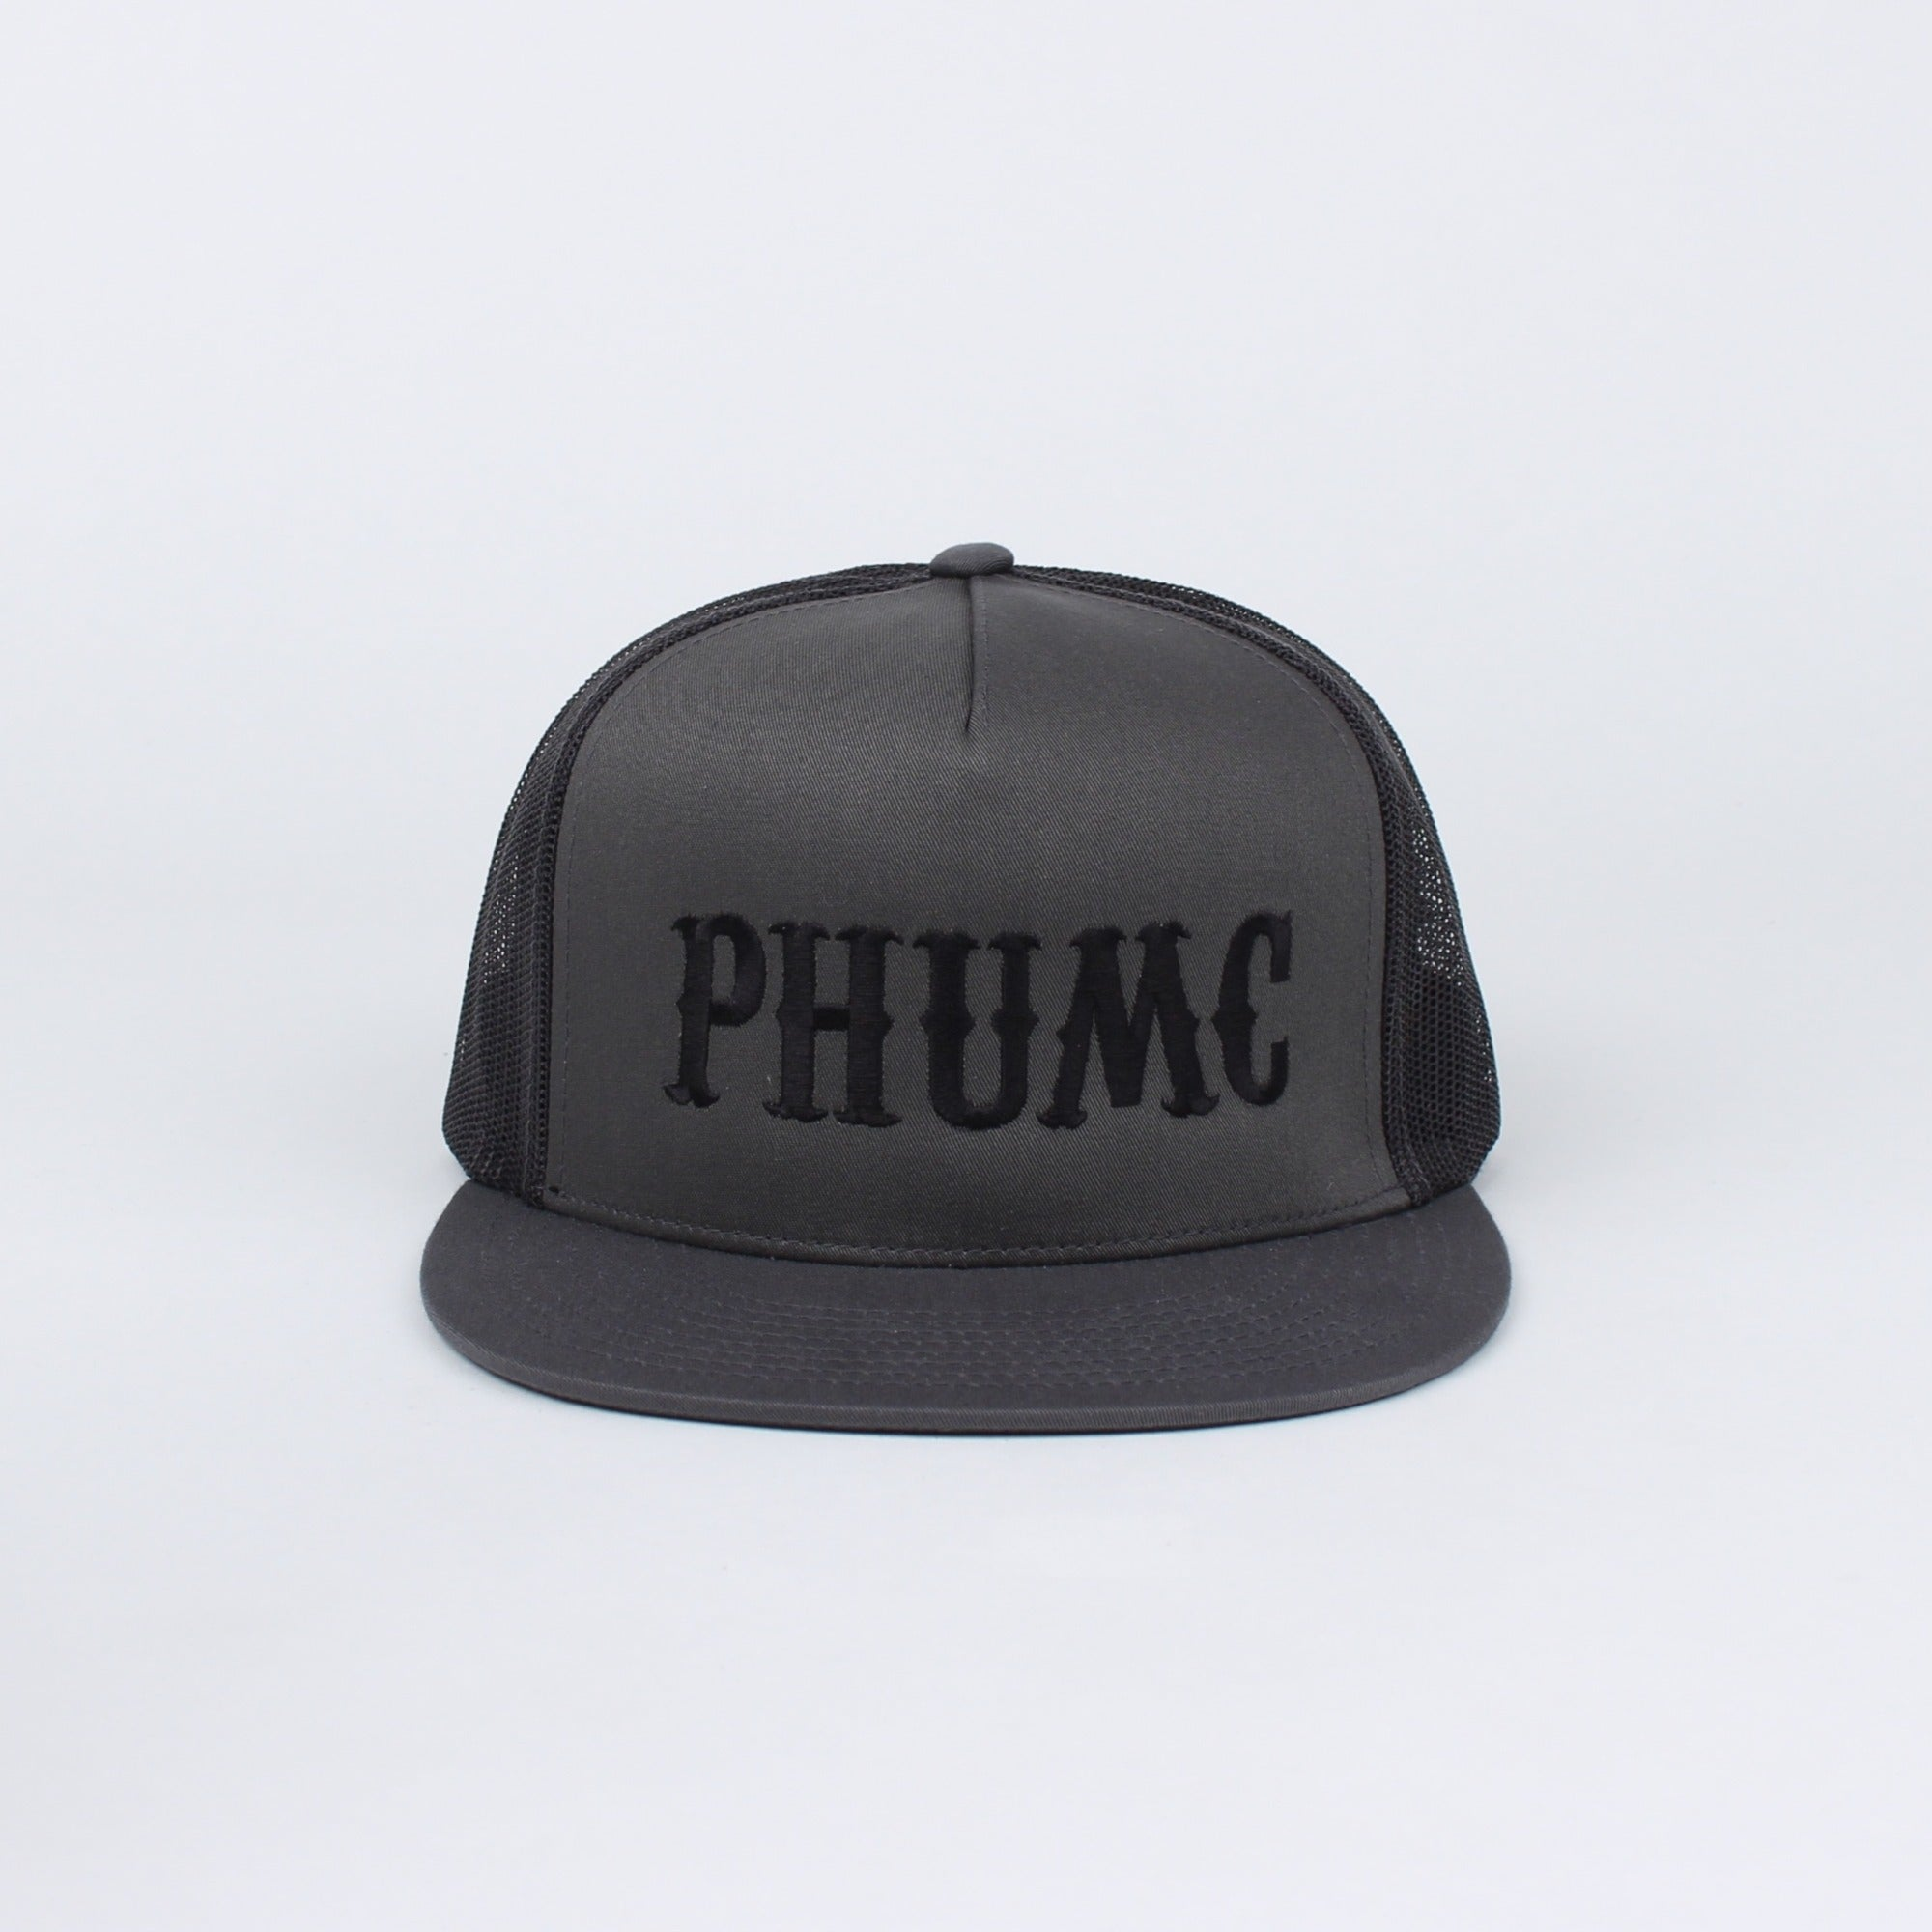 PHUMC CTR Linear Flat Bill Snapback (Grey) -  - Hats - Pipe Hitters Union